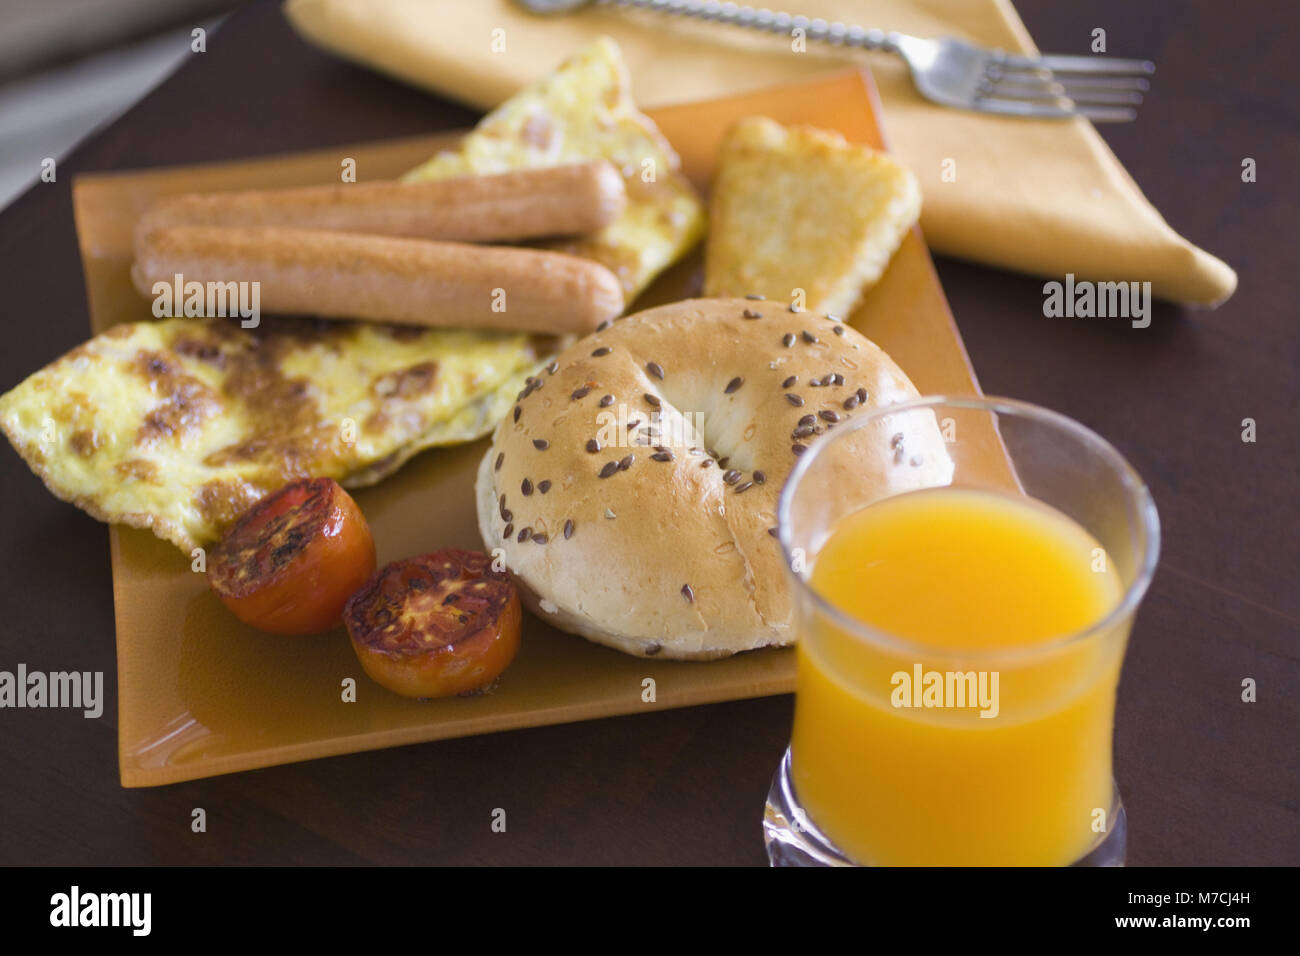 High angle view of an omelet served with frankfurters and a bagel - Stock Image